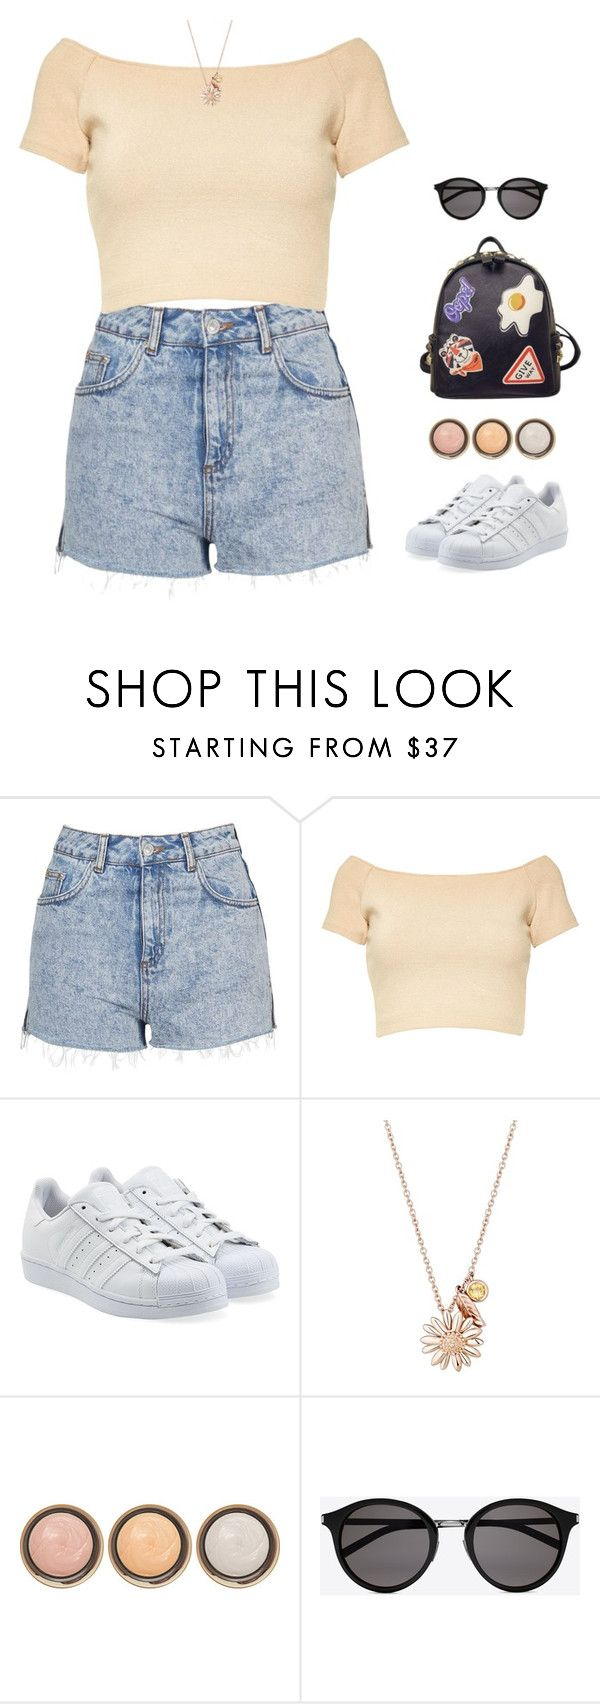 """I'm stuck with the heartache"" by intanology ❤ liked on Polyvore featuring Topshop, Alice + Olivia, adidas Originals, Daisy Jewellery, By Terry, Yves Saint Laurent and WithChic"